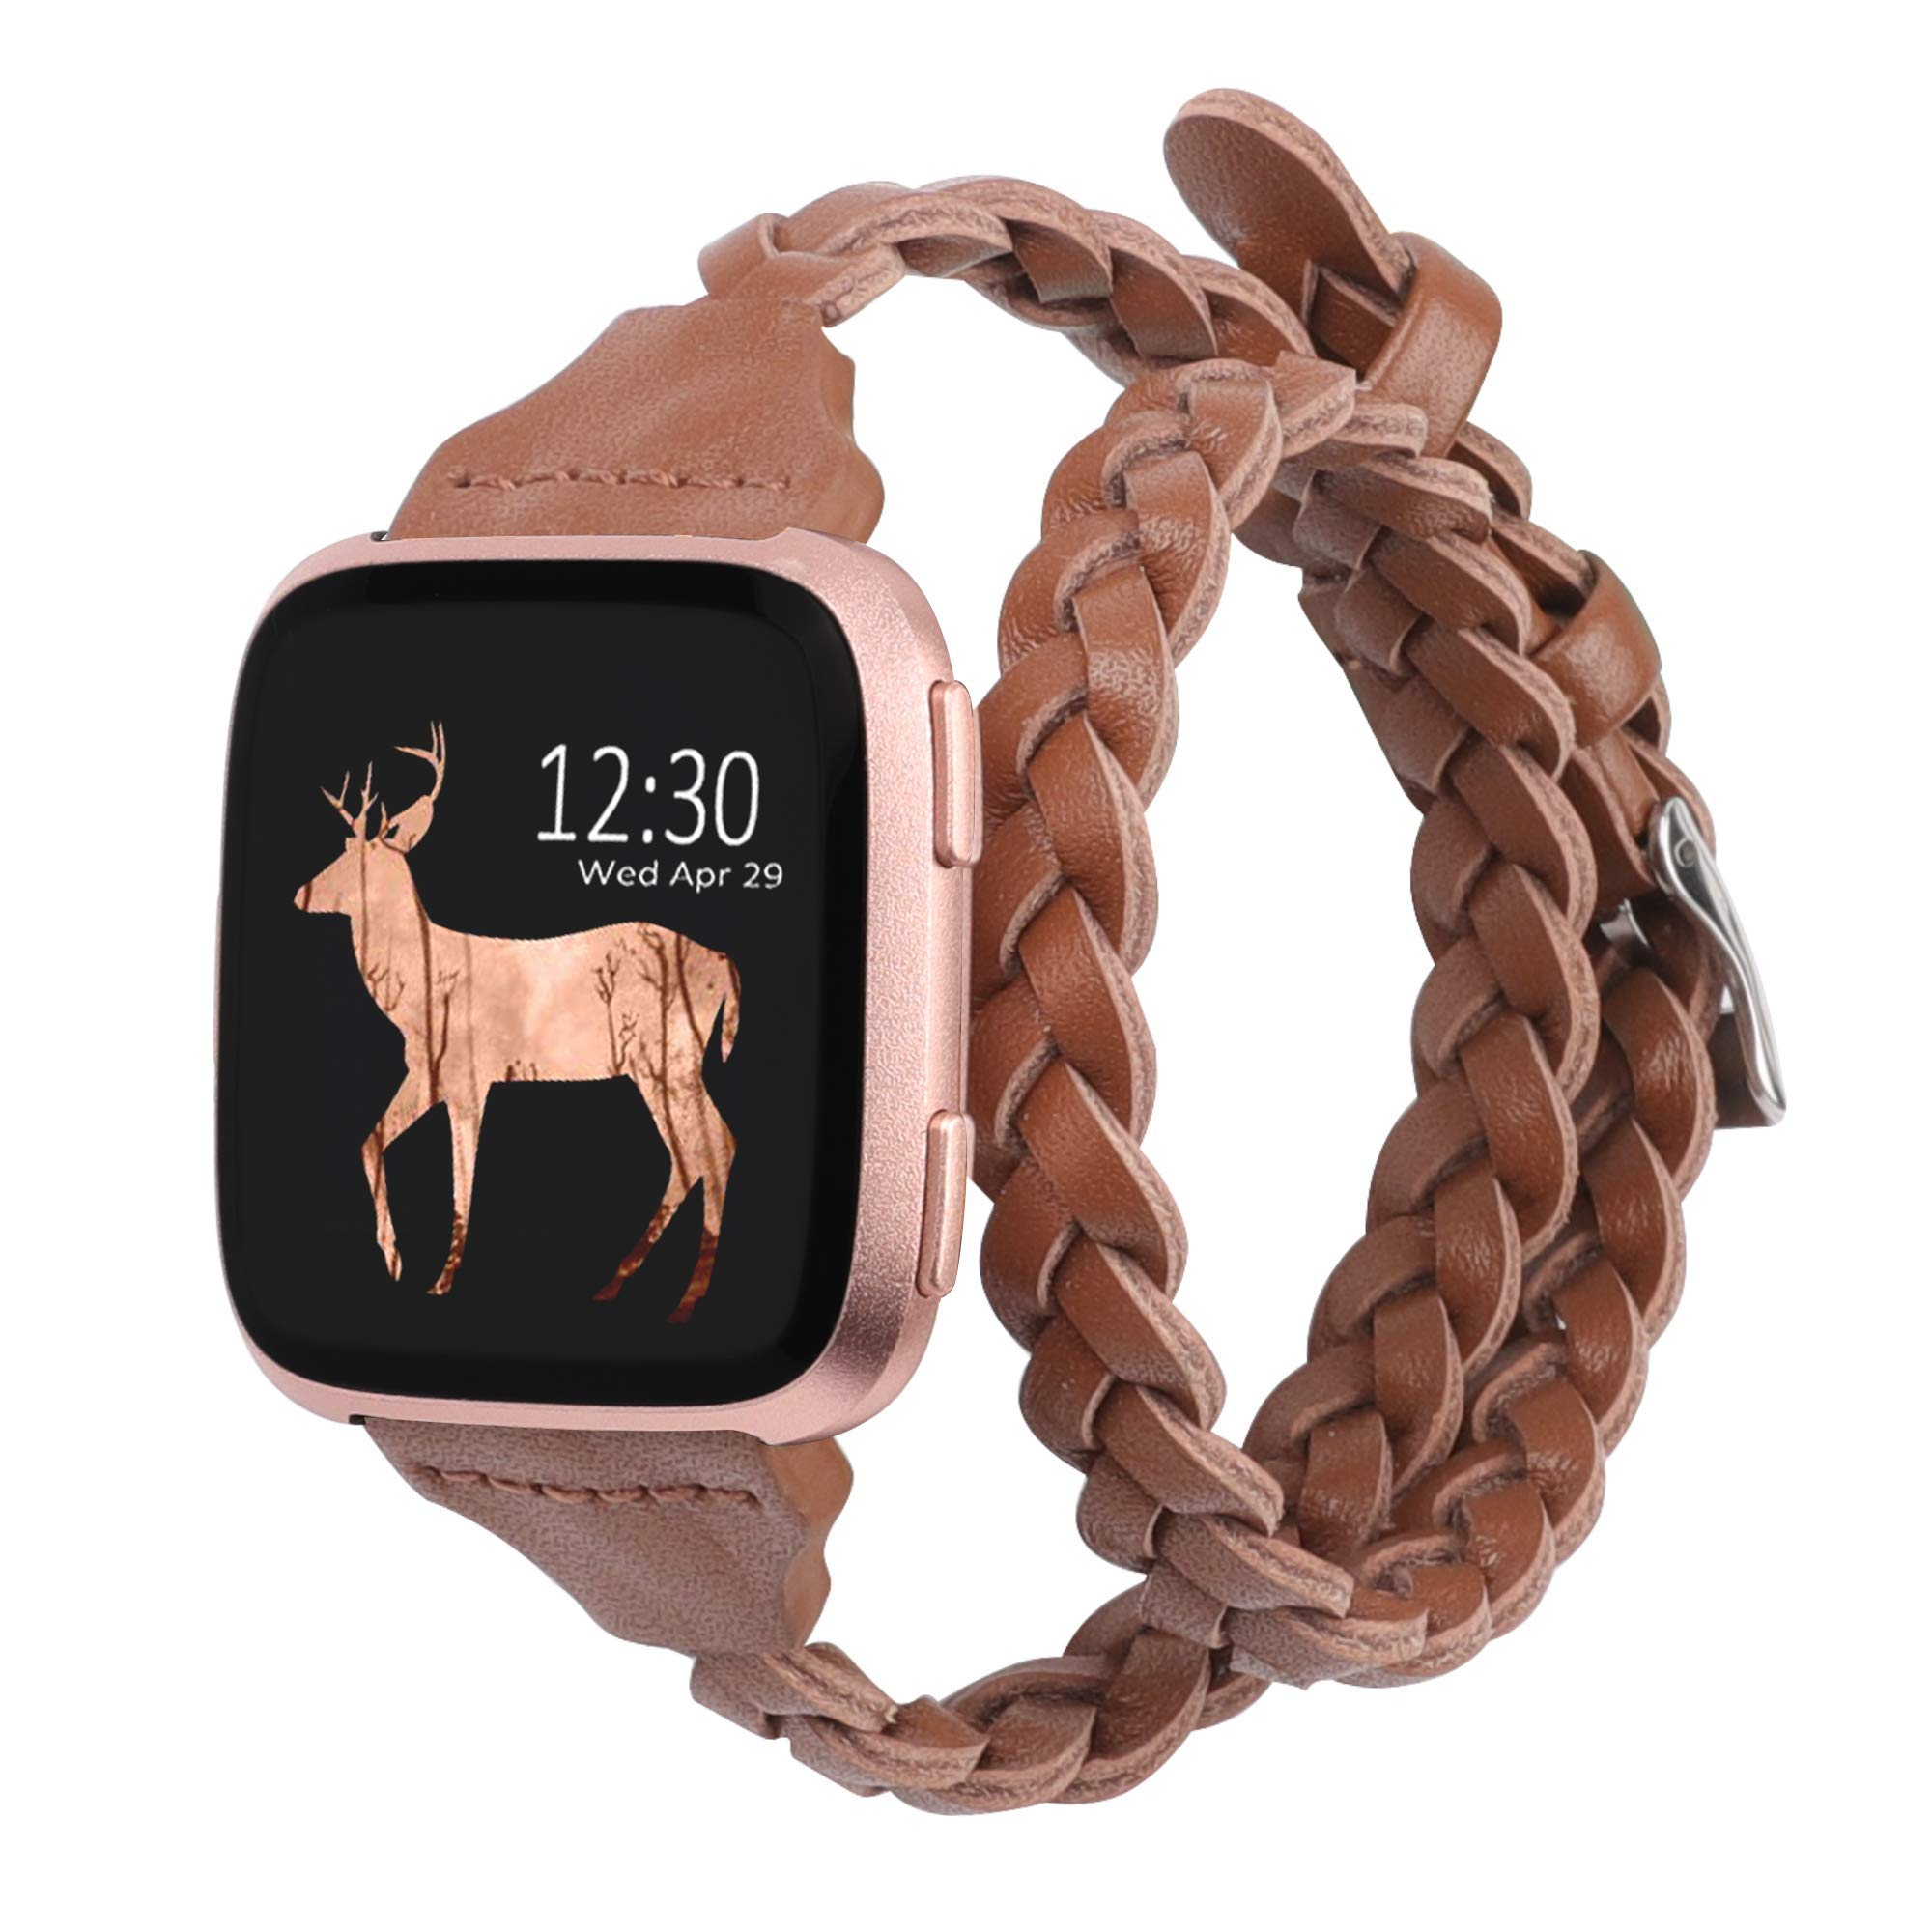 Glebo Bands Compatible for Compatible with Fitbit Versa 2/Versa/Versa Lite Edition,Slim Leather Double Wrap Around Bands Strap Replacement Wristband Bracelet Straps for Fitbit